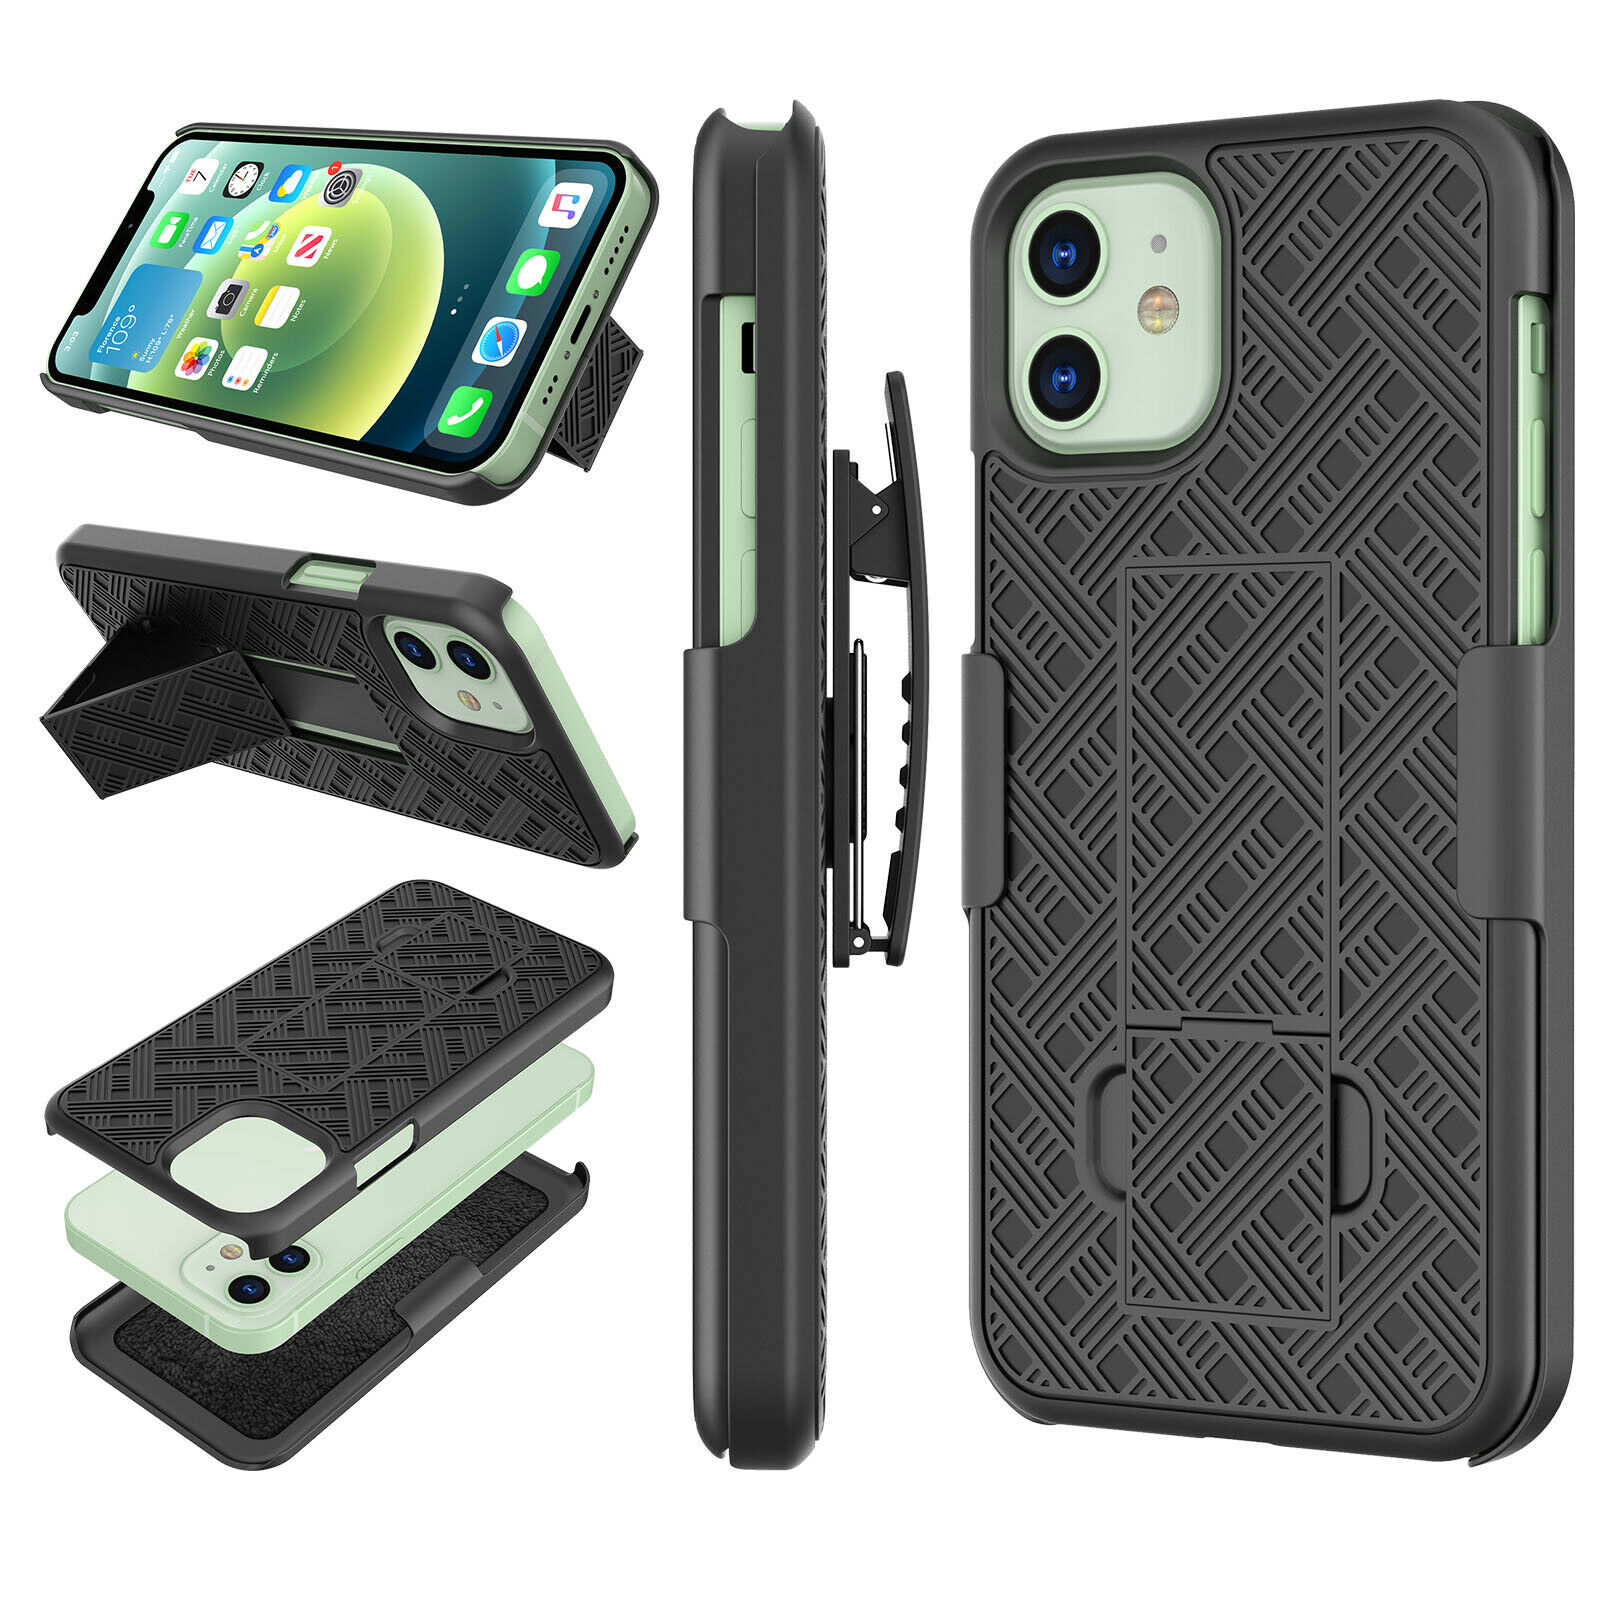 Seidio Dilex Case With Kickstand And Holster Combo For Htc U11 Black Black For Sale Online Ebay